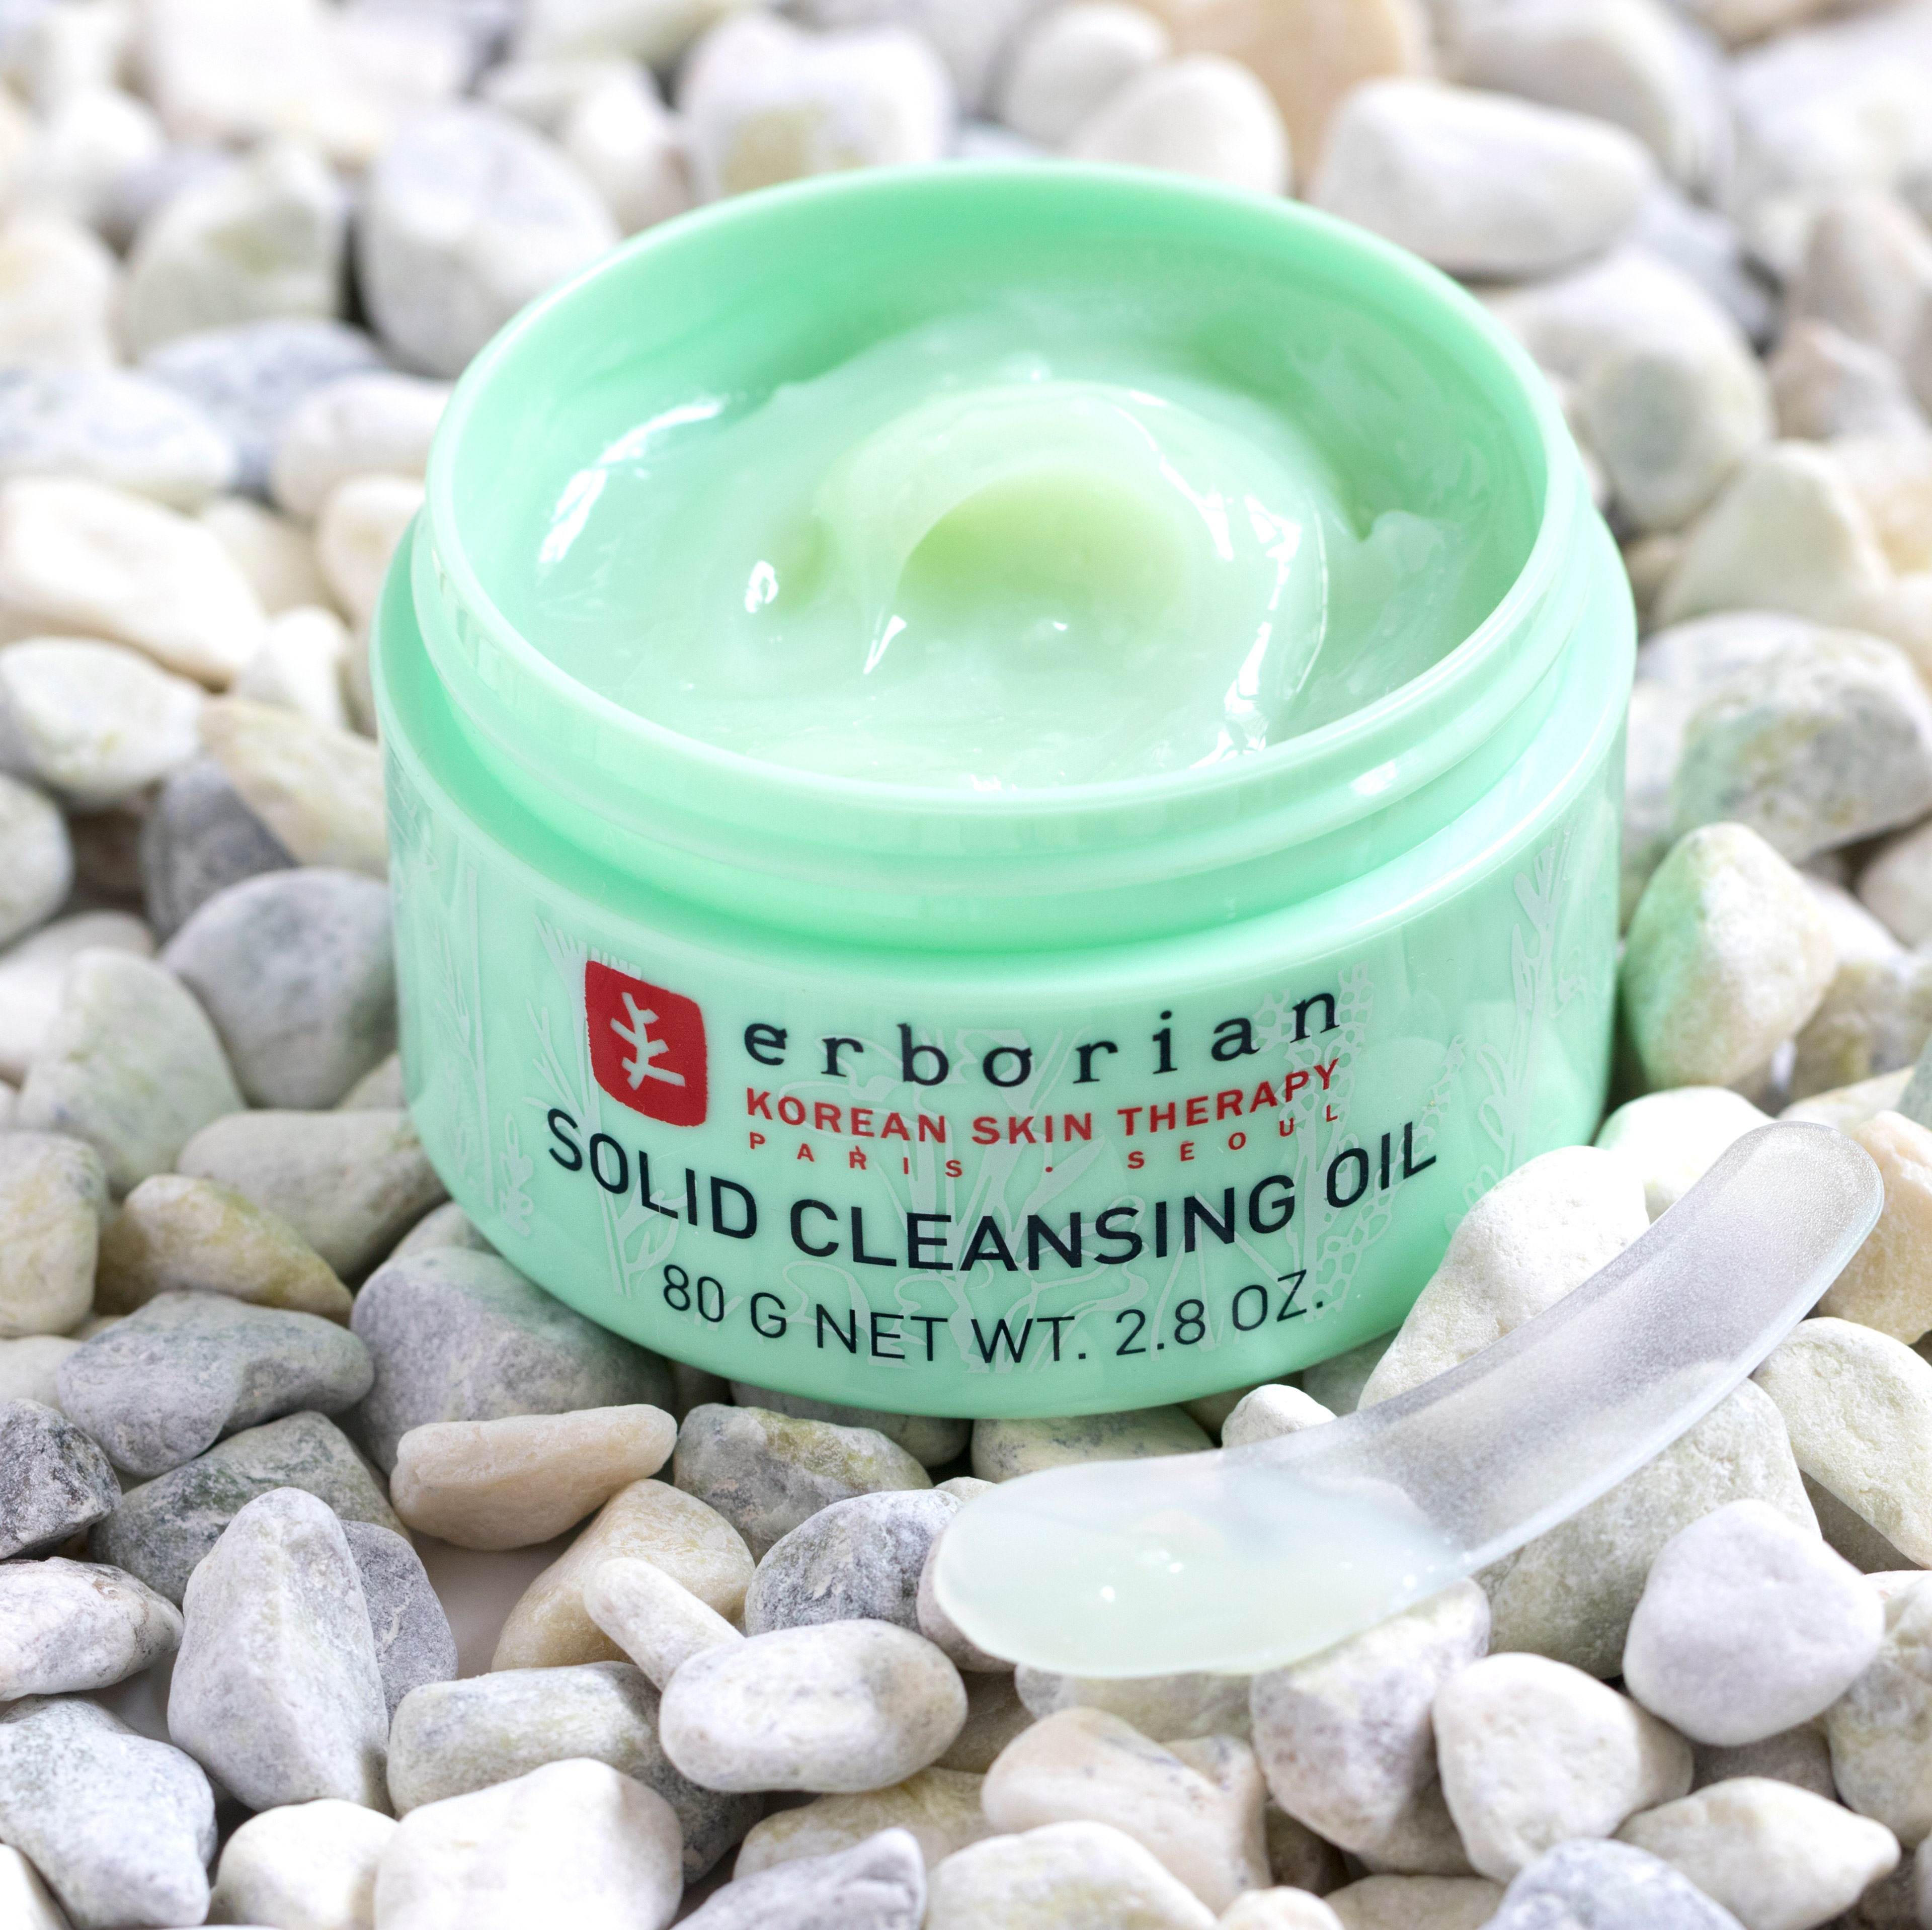 1. OIL-BASED CLEANSING